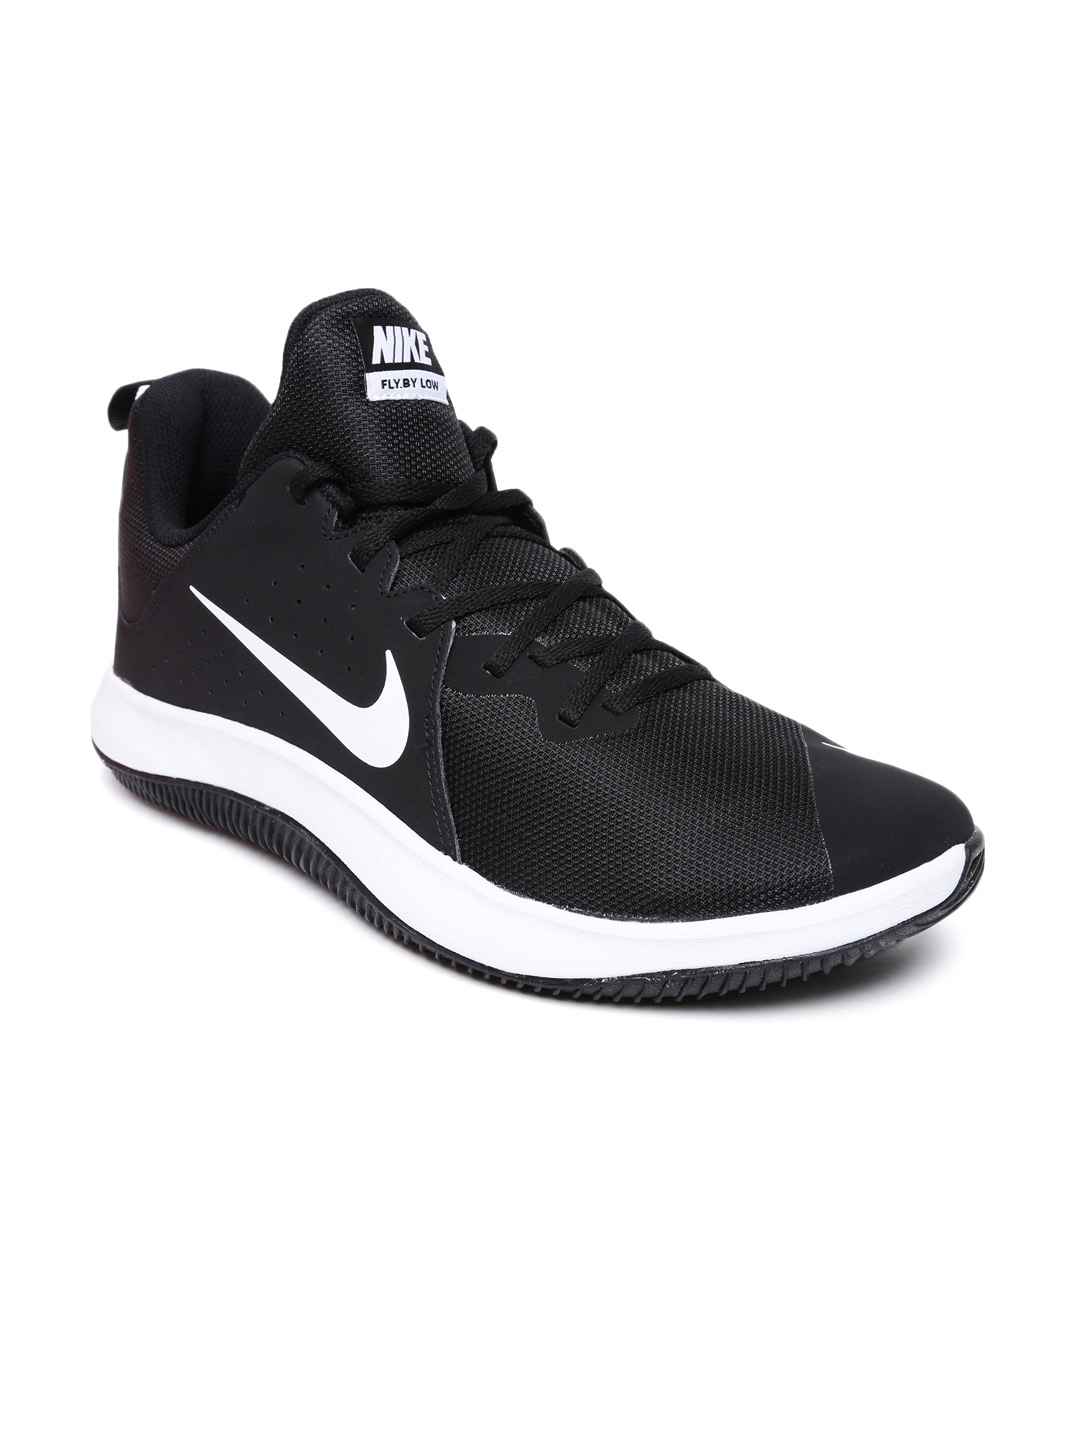 46b5c03f3f2a Buy Nike Men Black FLY.BY LOW Basketball Shoes - Sports Shoes for ...